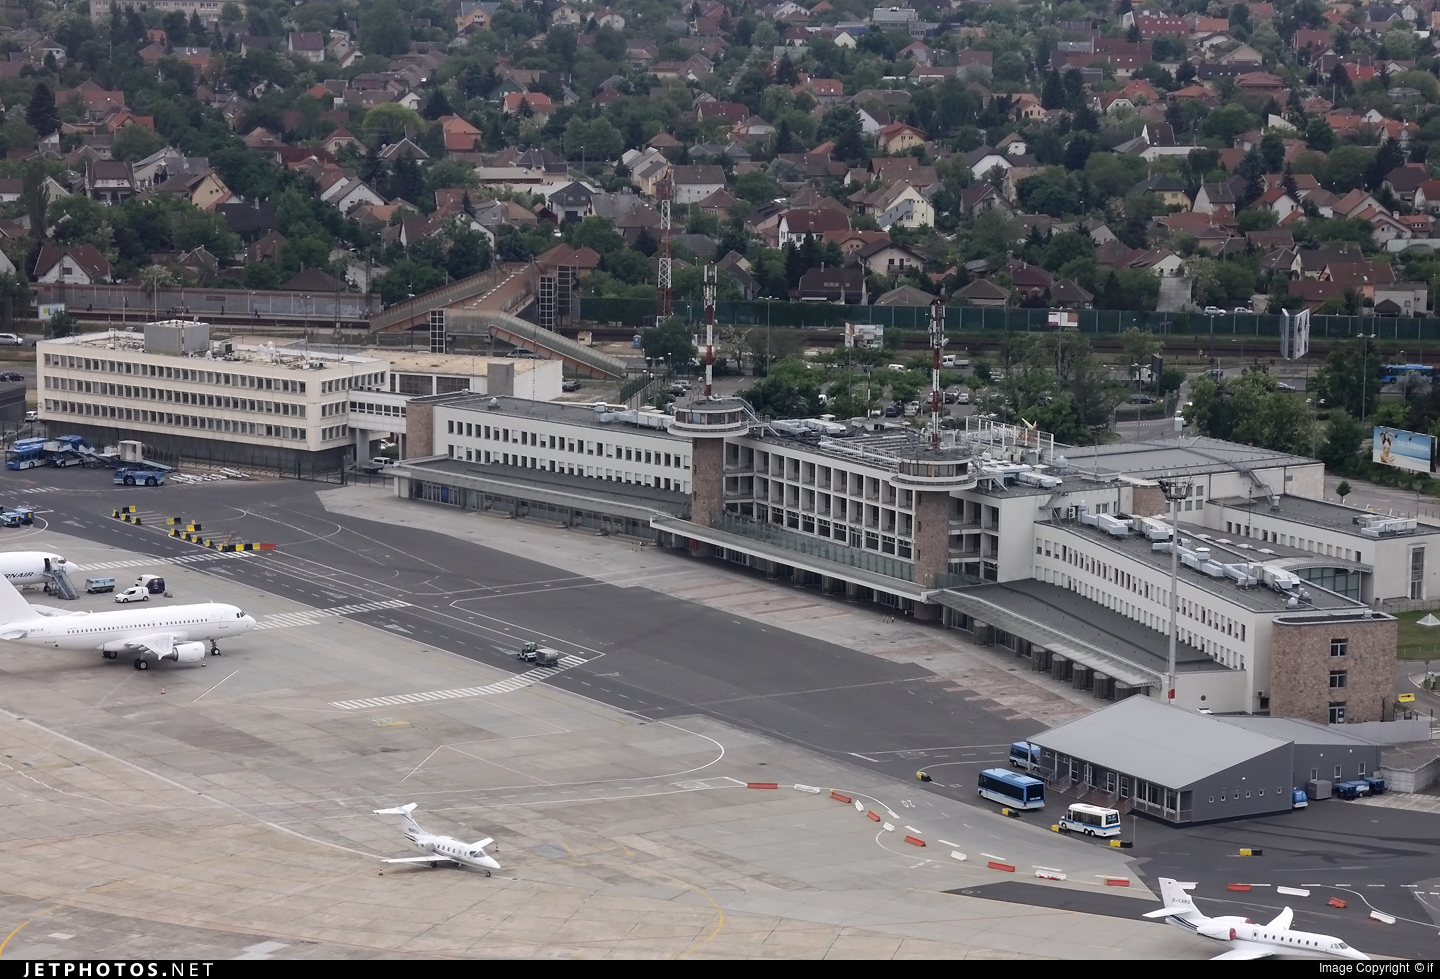 LHBP - Airport - Airport Overview